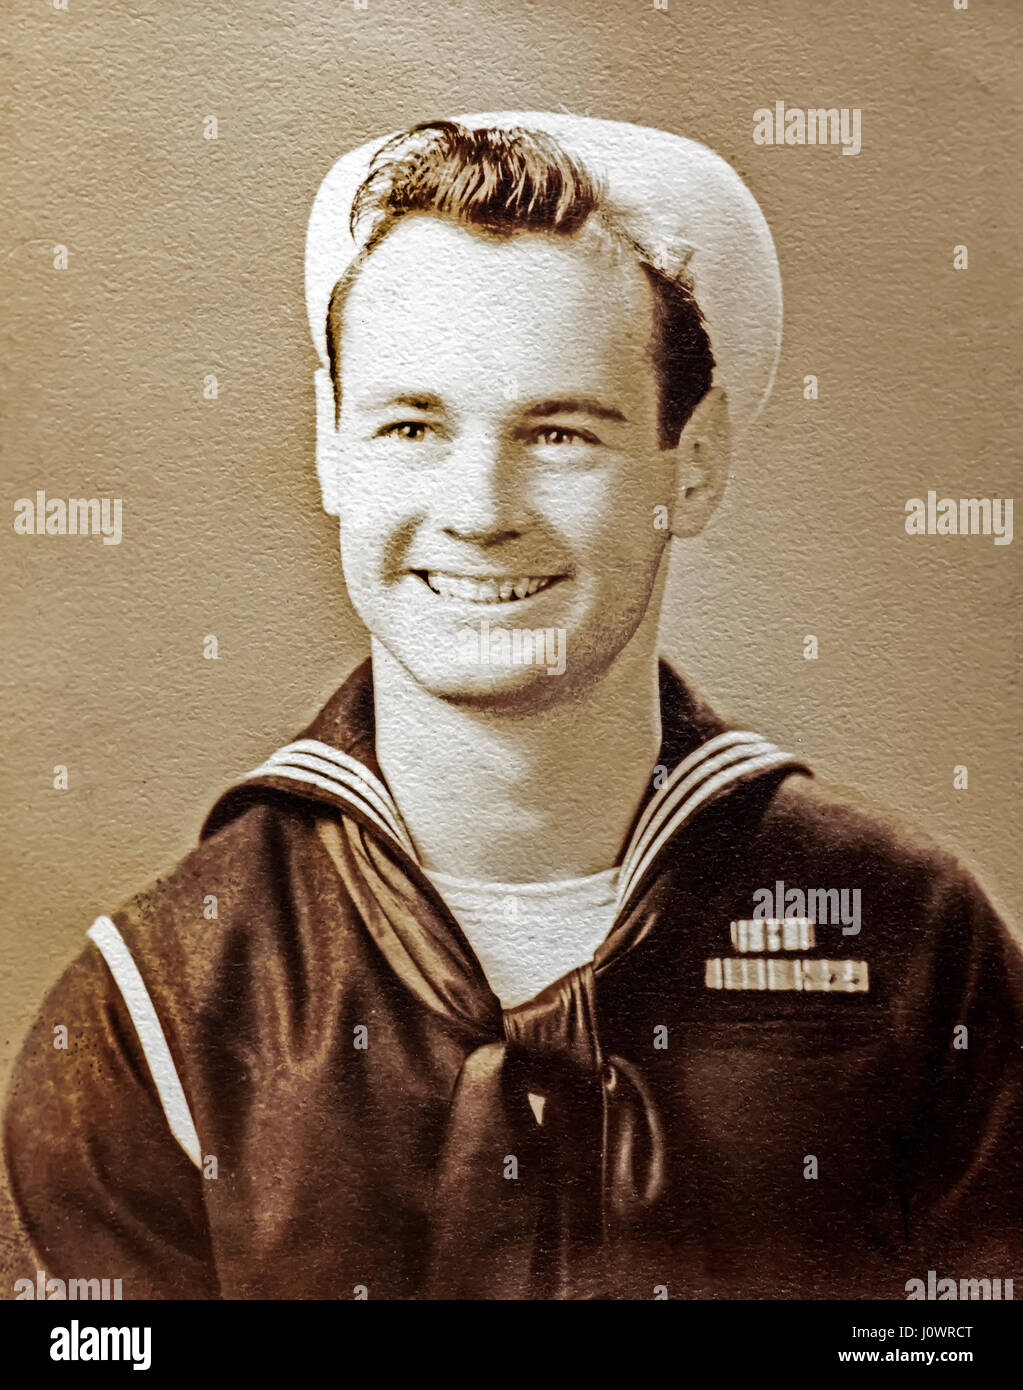 Vintage portrait of a WW 2 Navy Sailor wearing a  dixie cup  white sailor  hat and the  crackerjack  uniform in Hudson b34b3070d2c